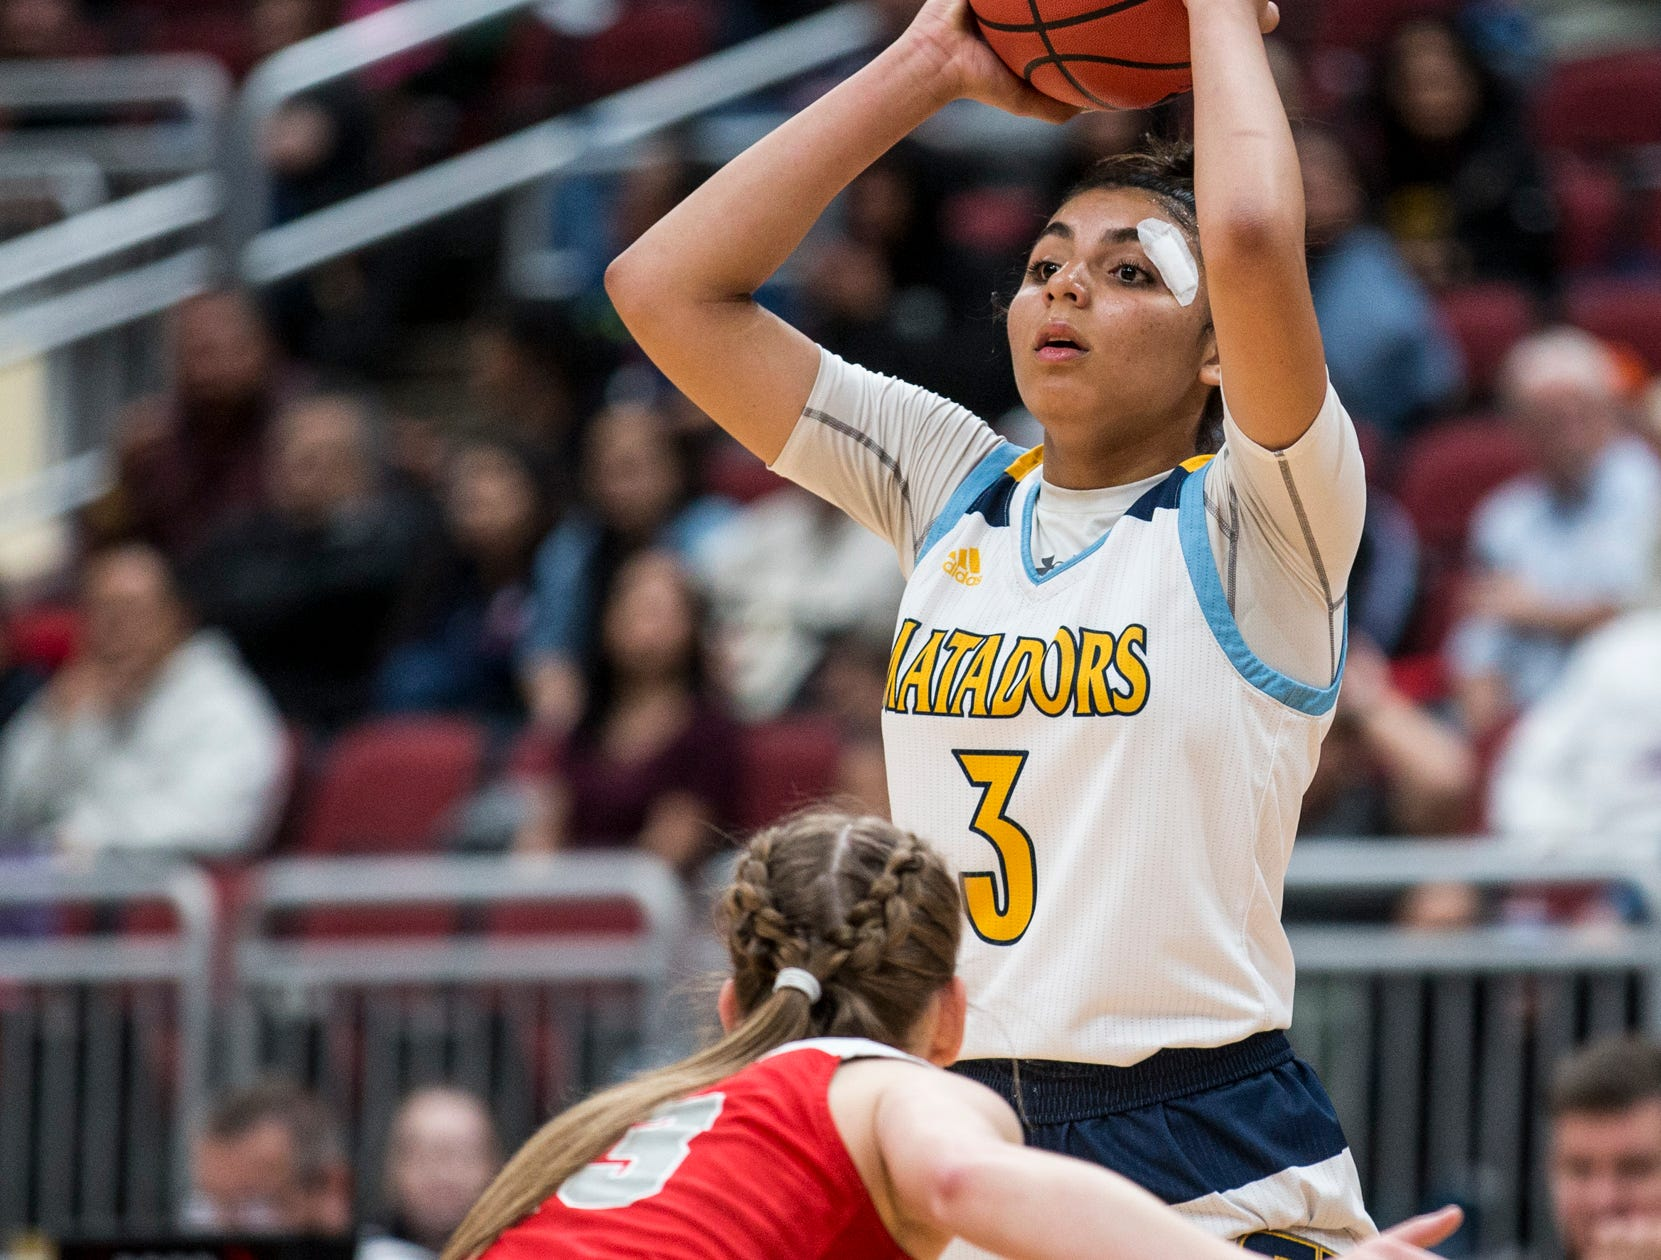 Shadow Mountain's Zhane Jordan looks to pass against Seton Catholic during the 4A girls basketball championship on Saturday, Feb. 23, 2019, at Gila River Arena in Glendale, Ariz.